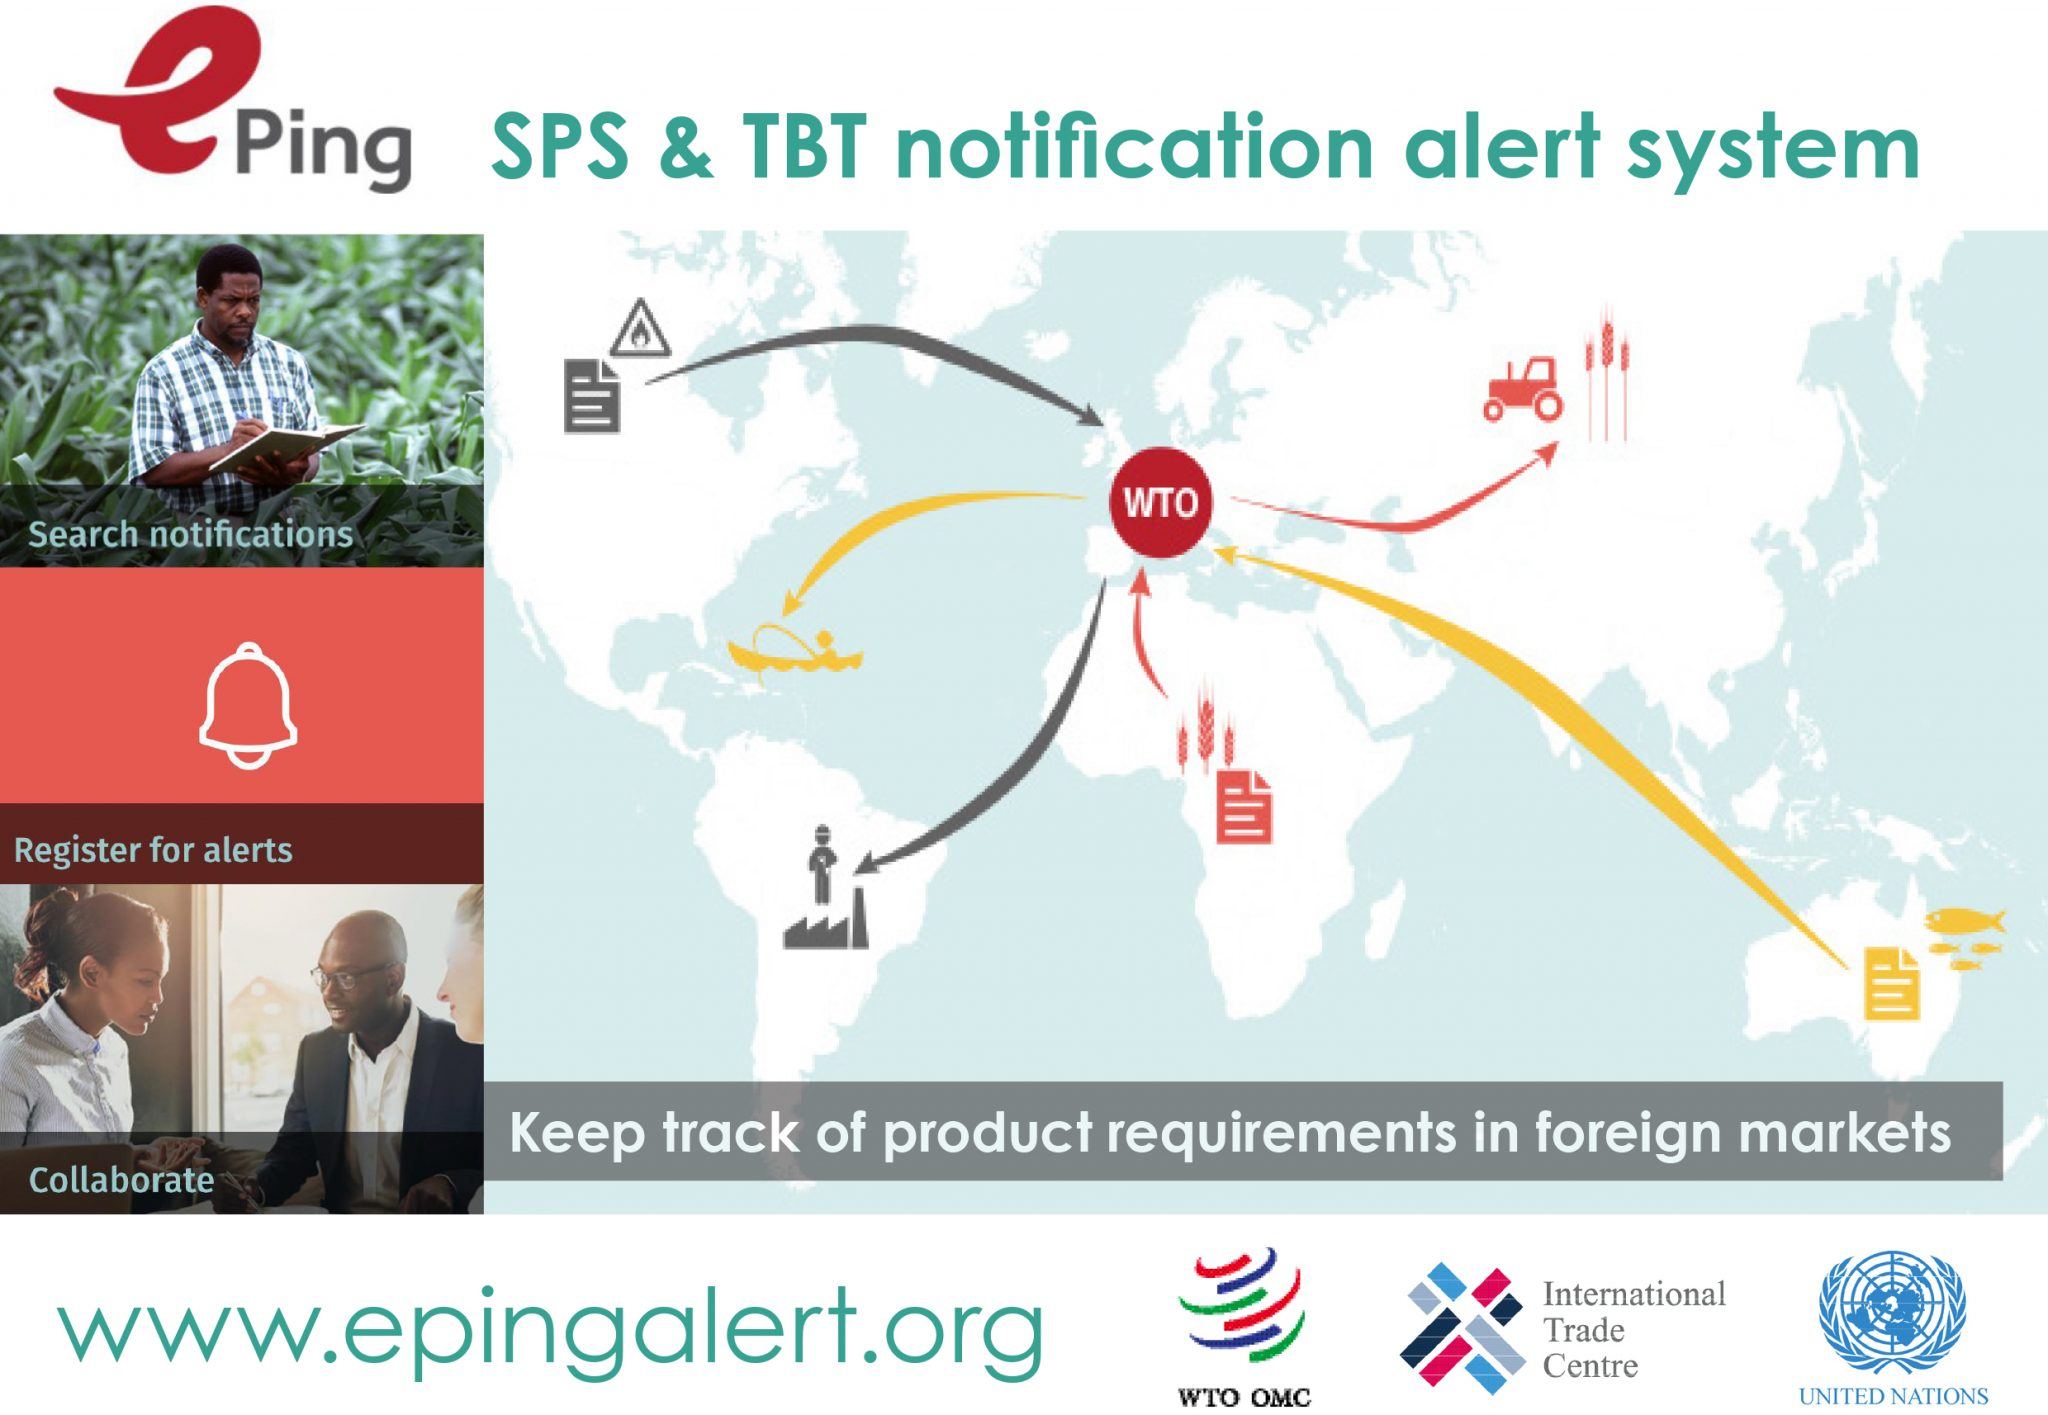 Image: Users of ePing will be able to easily keep up-to-date with notifications affecting foreign markets and products of particular interest to them.